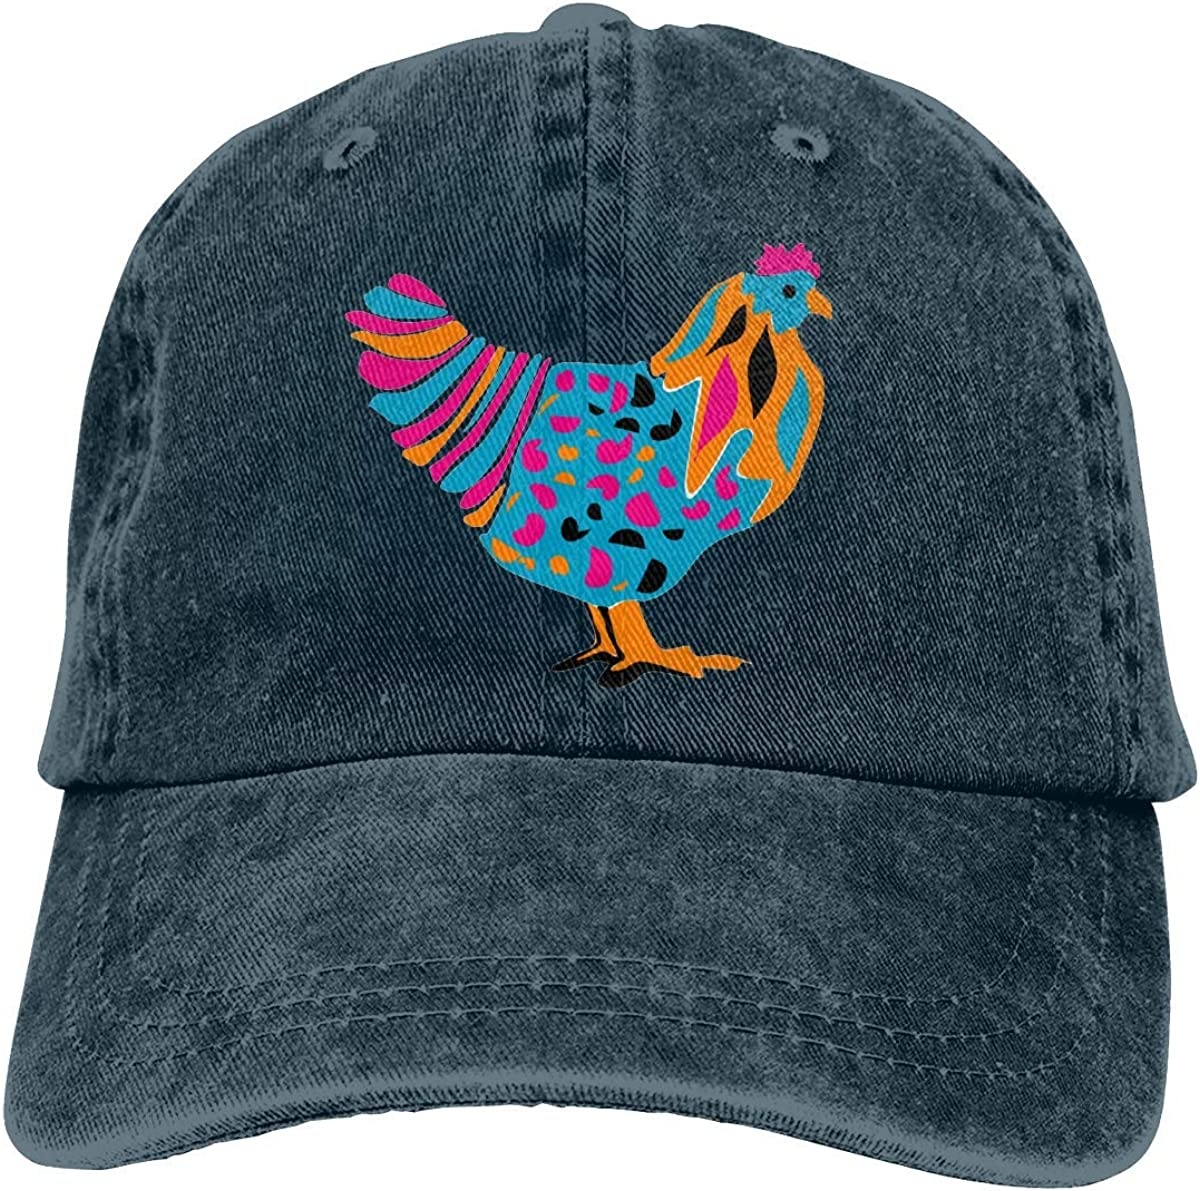 Mens and Women Unisex Funky Bright Chicken Twill Washed Dyed Adjustable Baseball Cap Dad Hat